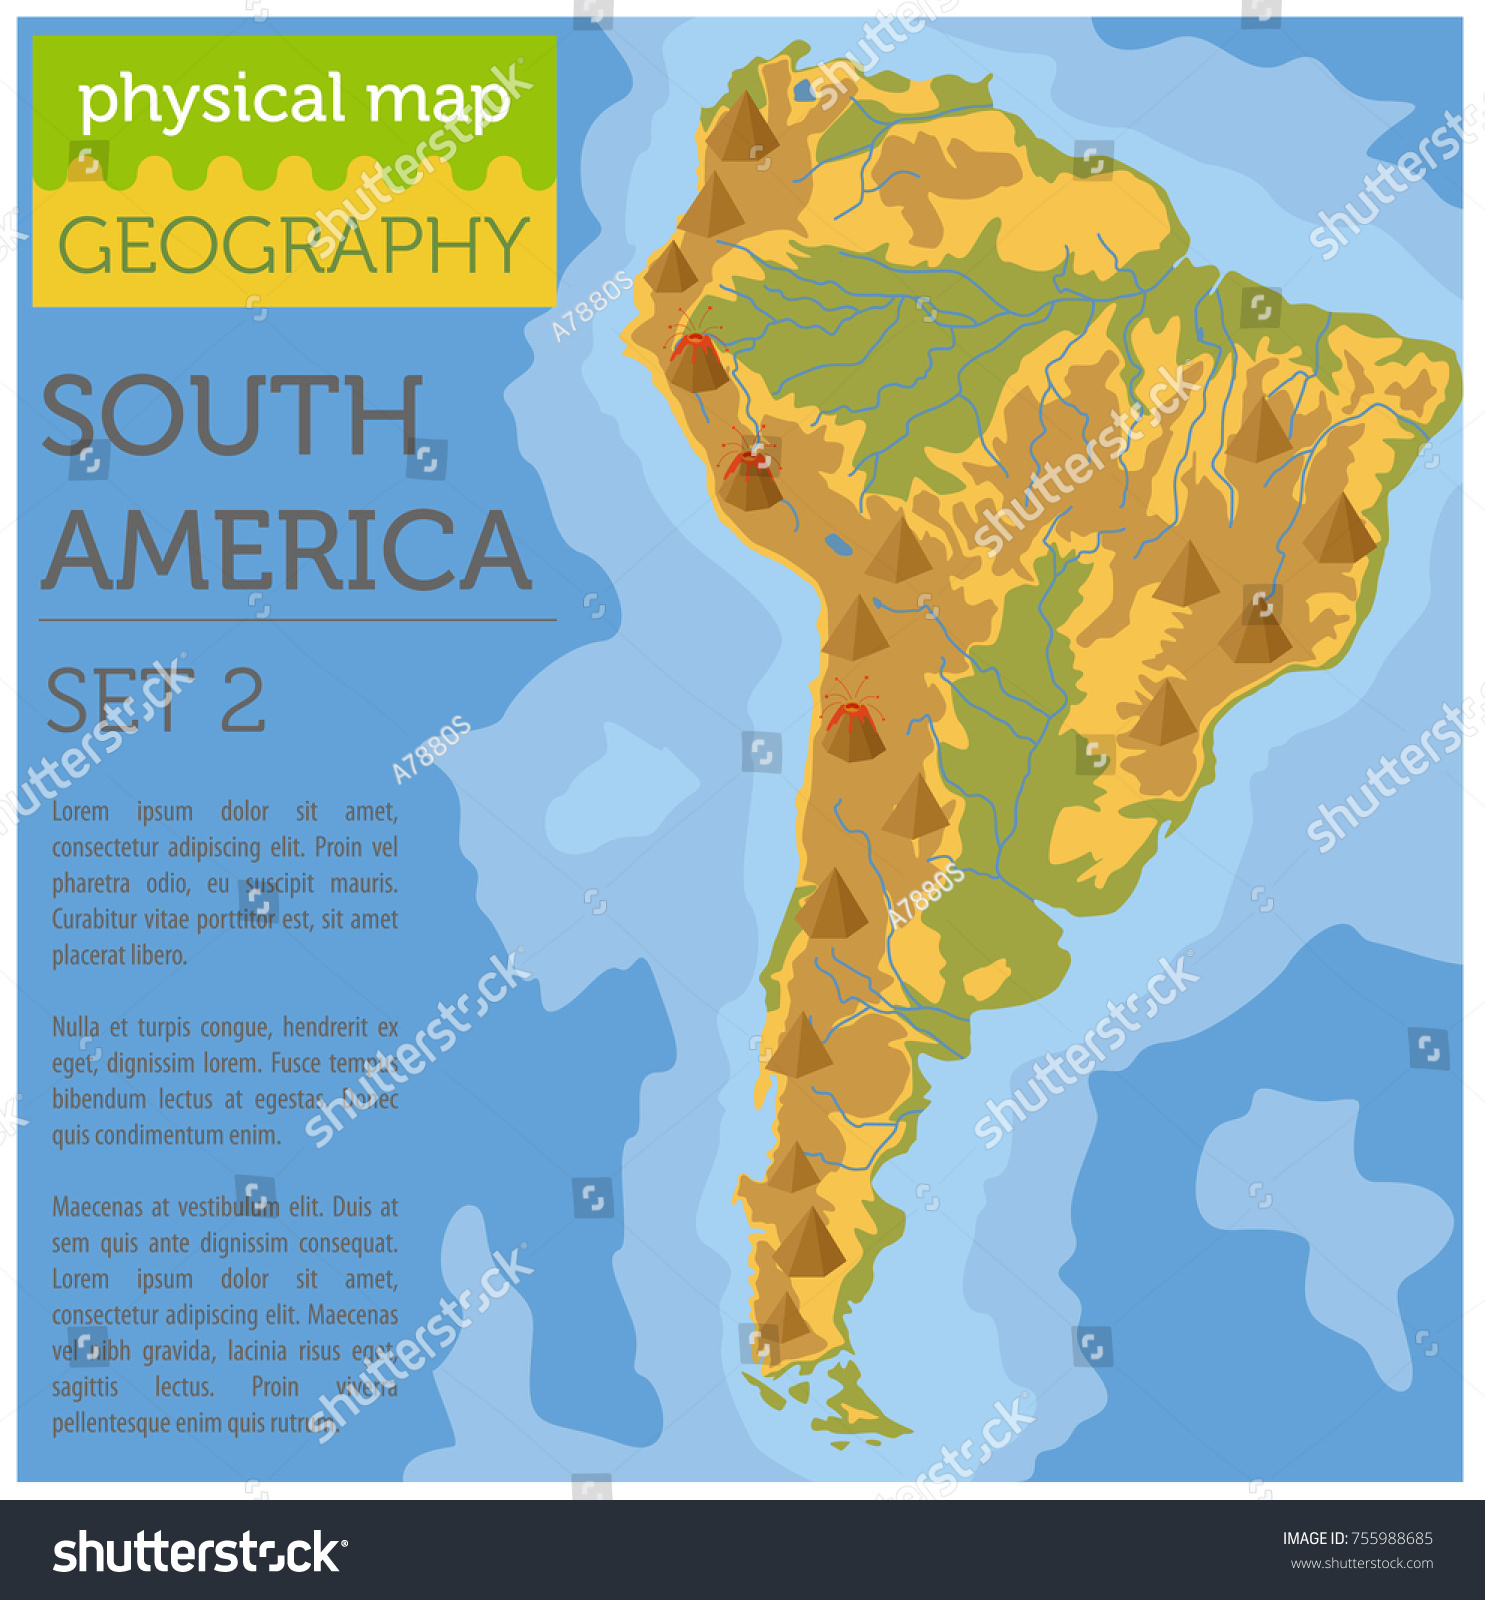 South America Physical Map Elements Build Stock Vector 755988685